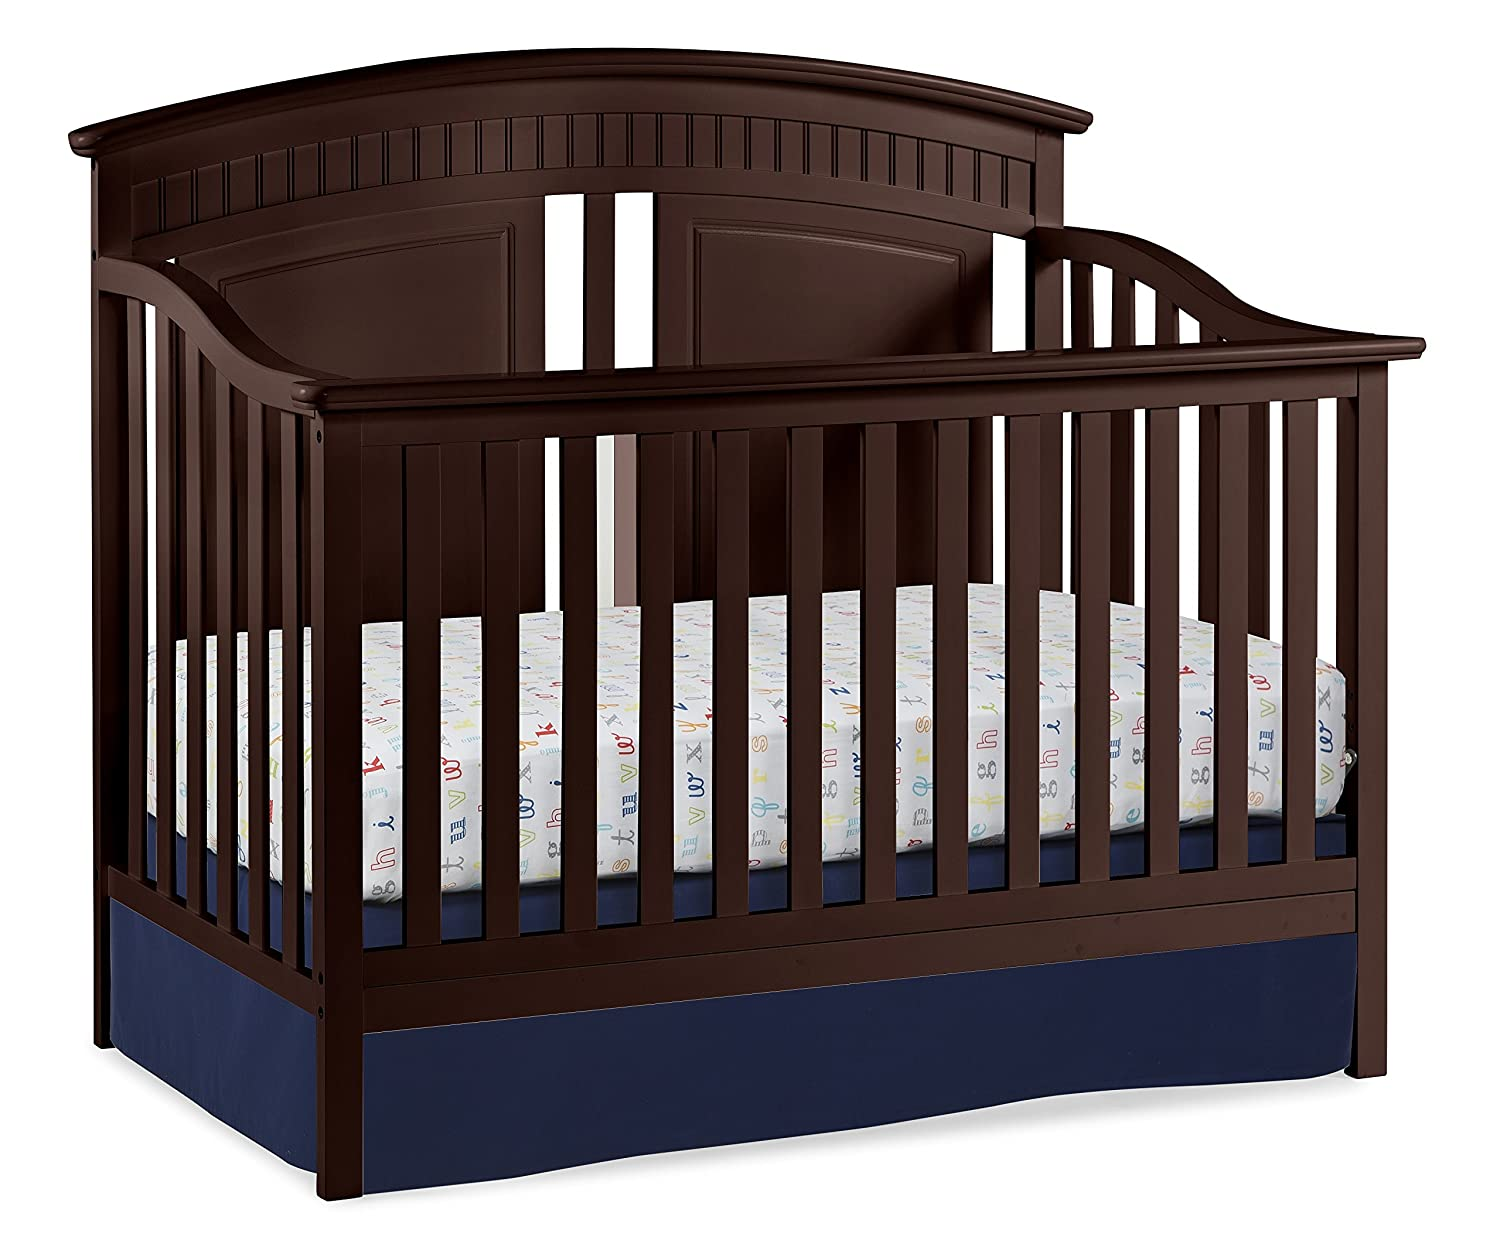 Thomasville Kids Majestic 4-in-1 Convertible Crib, Espresso, Easily Converts to Toddler Bed Day Bed or Full Bed, Three Position Adjustable Height Mattress, Some Assembly Required 04565-109